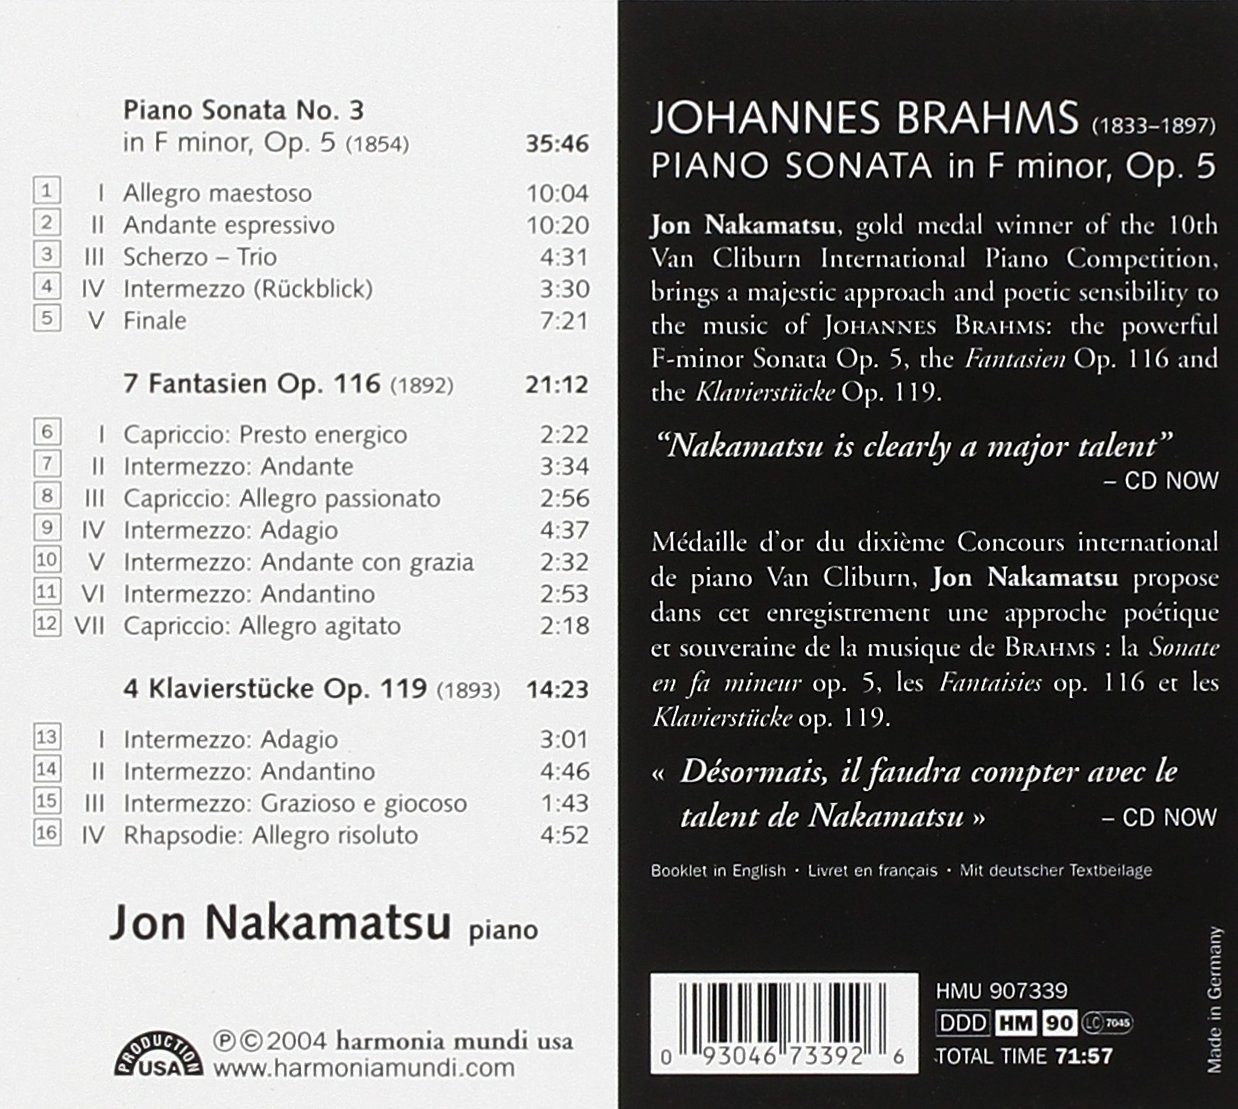 Brahms: Piano Sonata No. 3 in F minor, Op. 5 / 7 Fantasies Op. 116 / 4 Klavierstücke, Op. 119 by HARMONIA MUNDI.